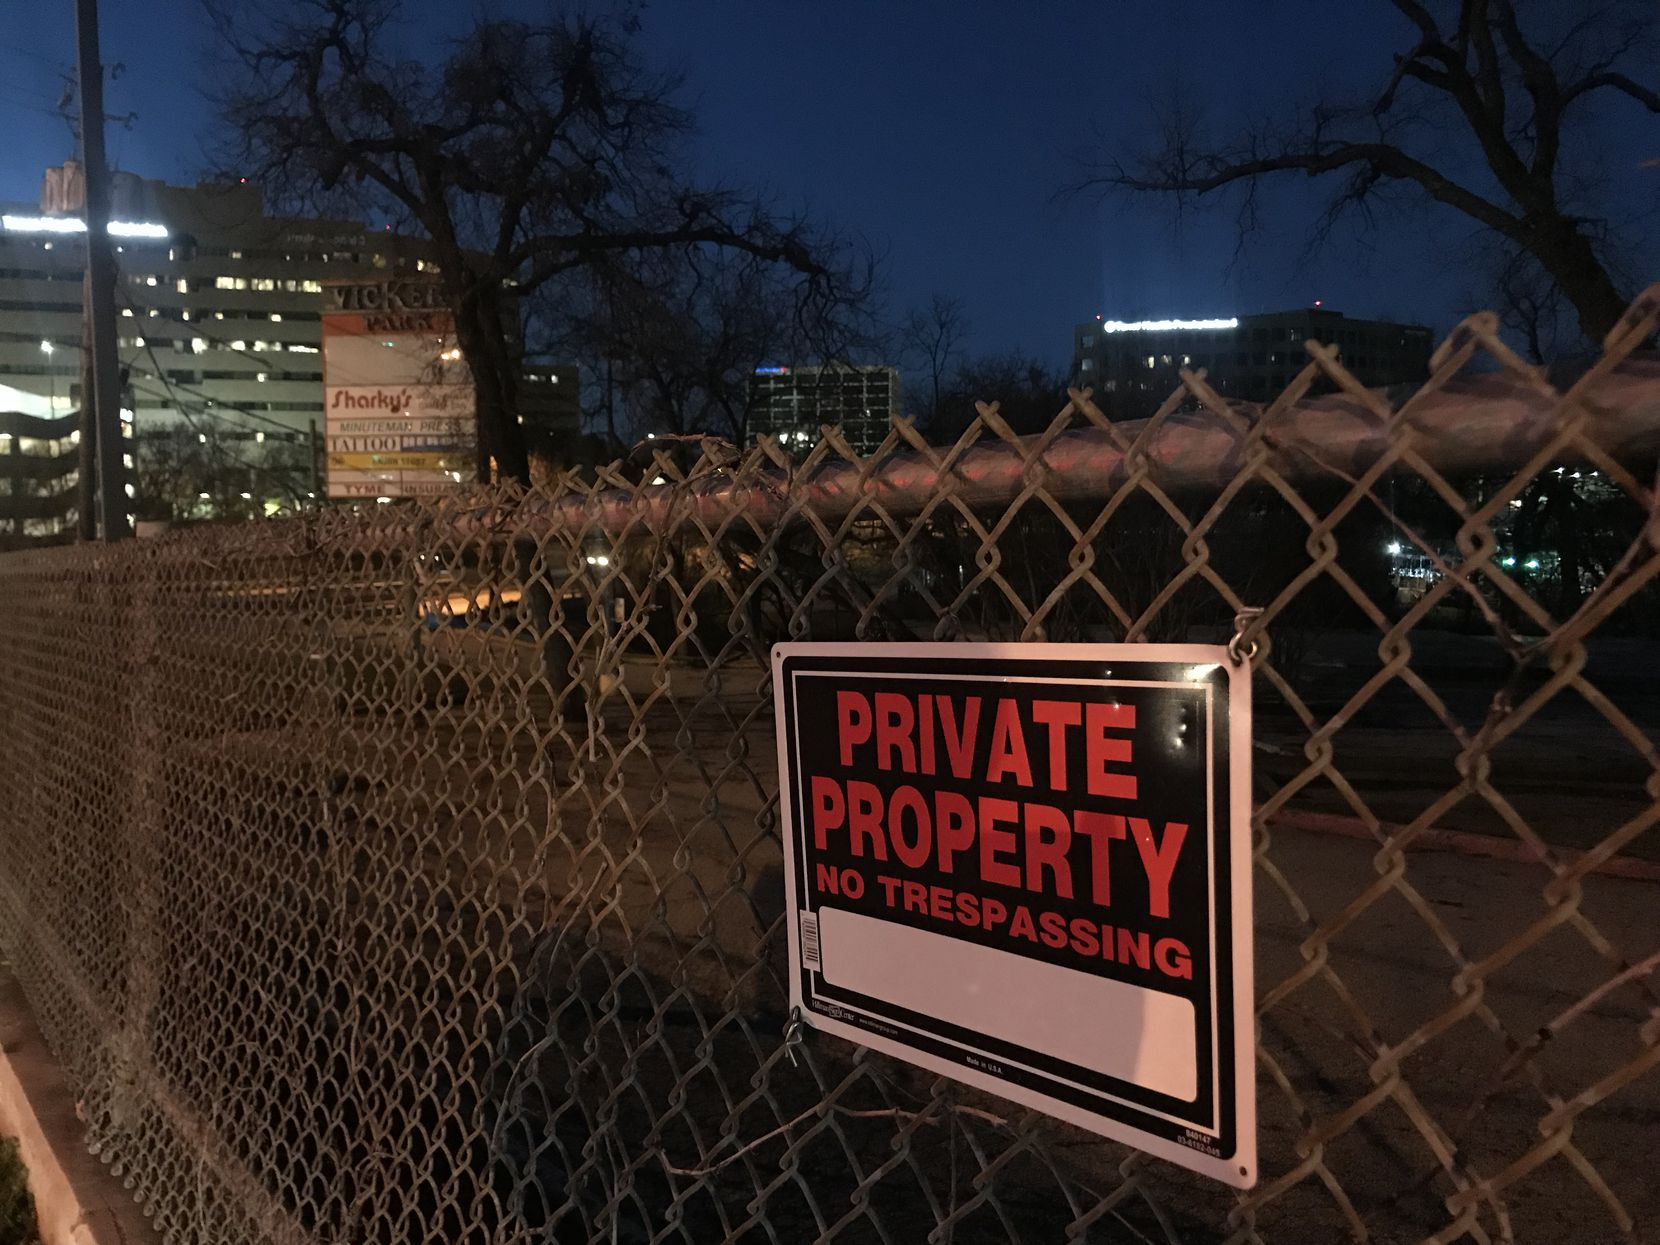 An area where Vickery Park used to be is now an empty lot. The area is also home to the American Heart Association's headquarters and several residential and commercial buildings.